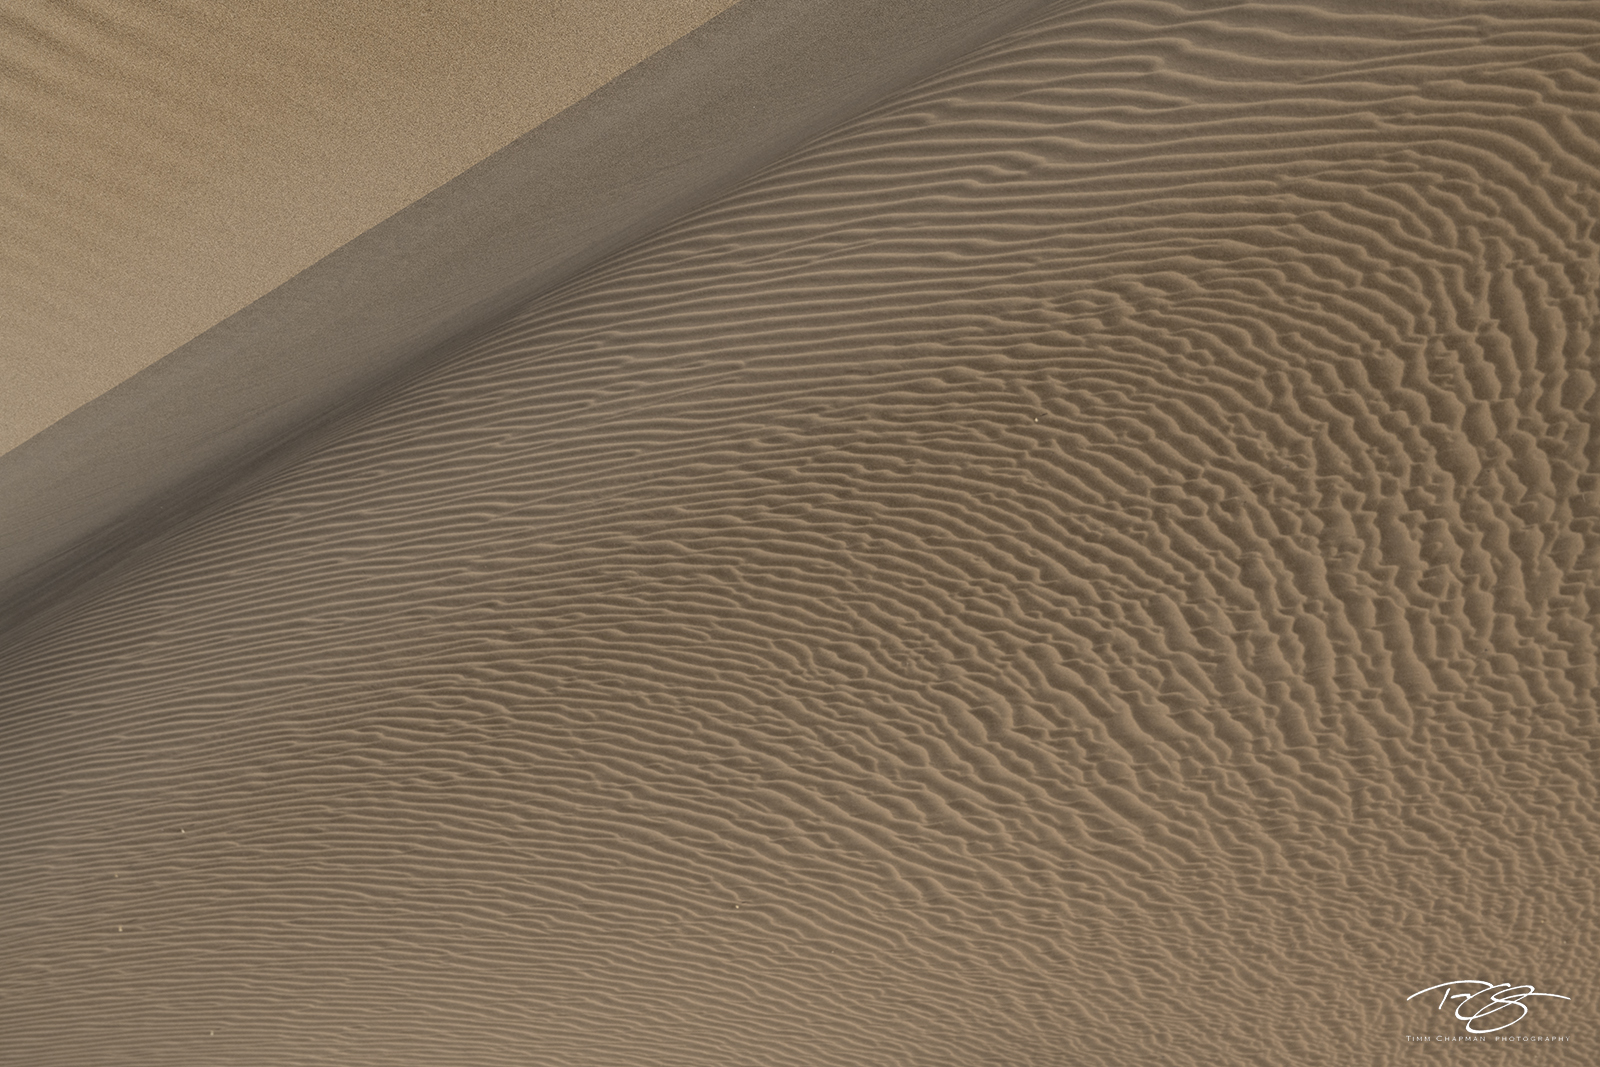 gobi desert, china, abstract, patterns, sand dune, sand, dune, desert, sandscape, gobi, photo